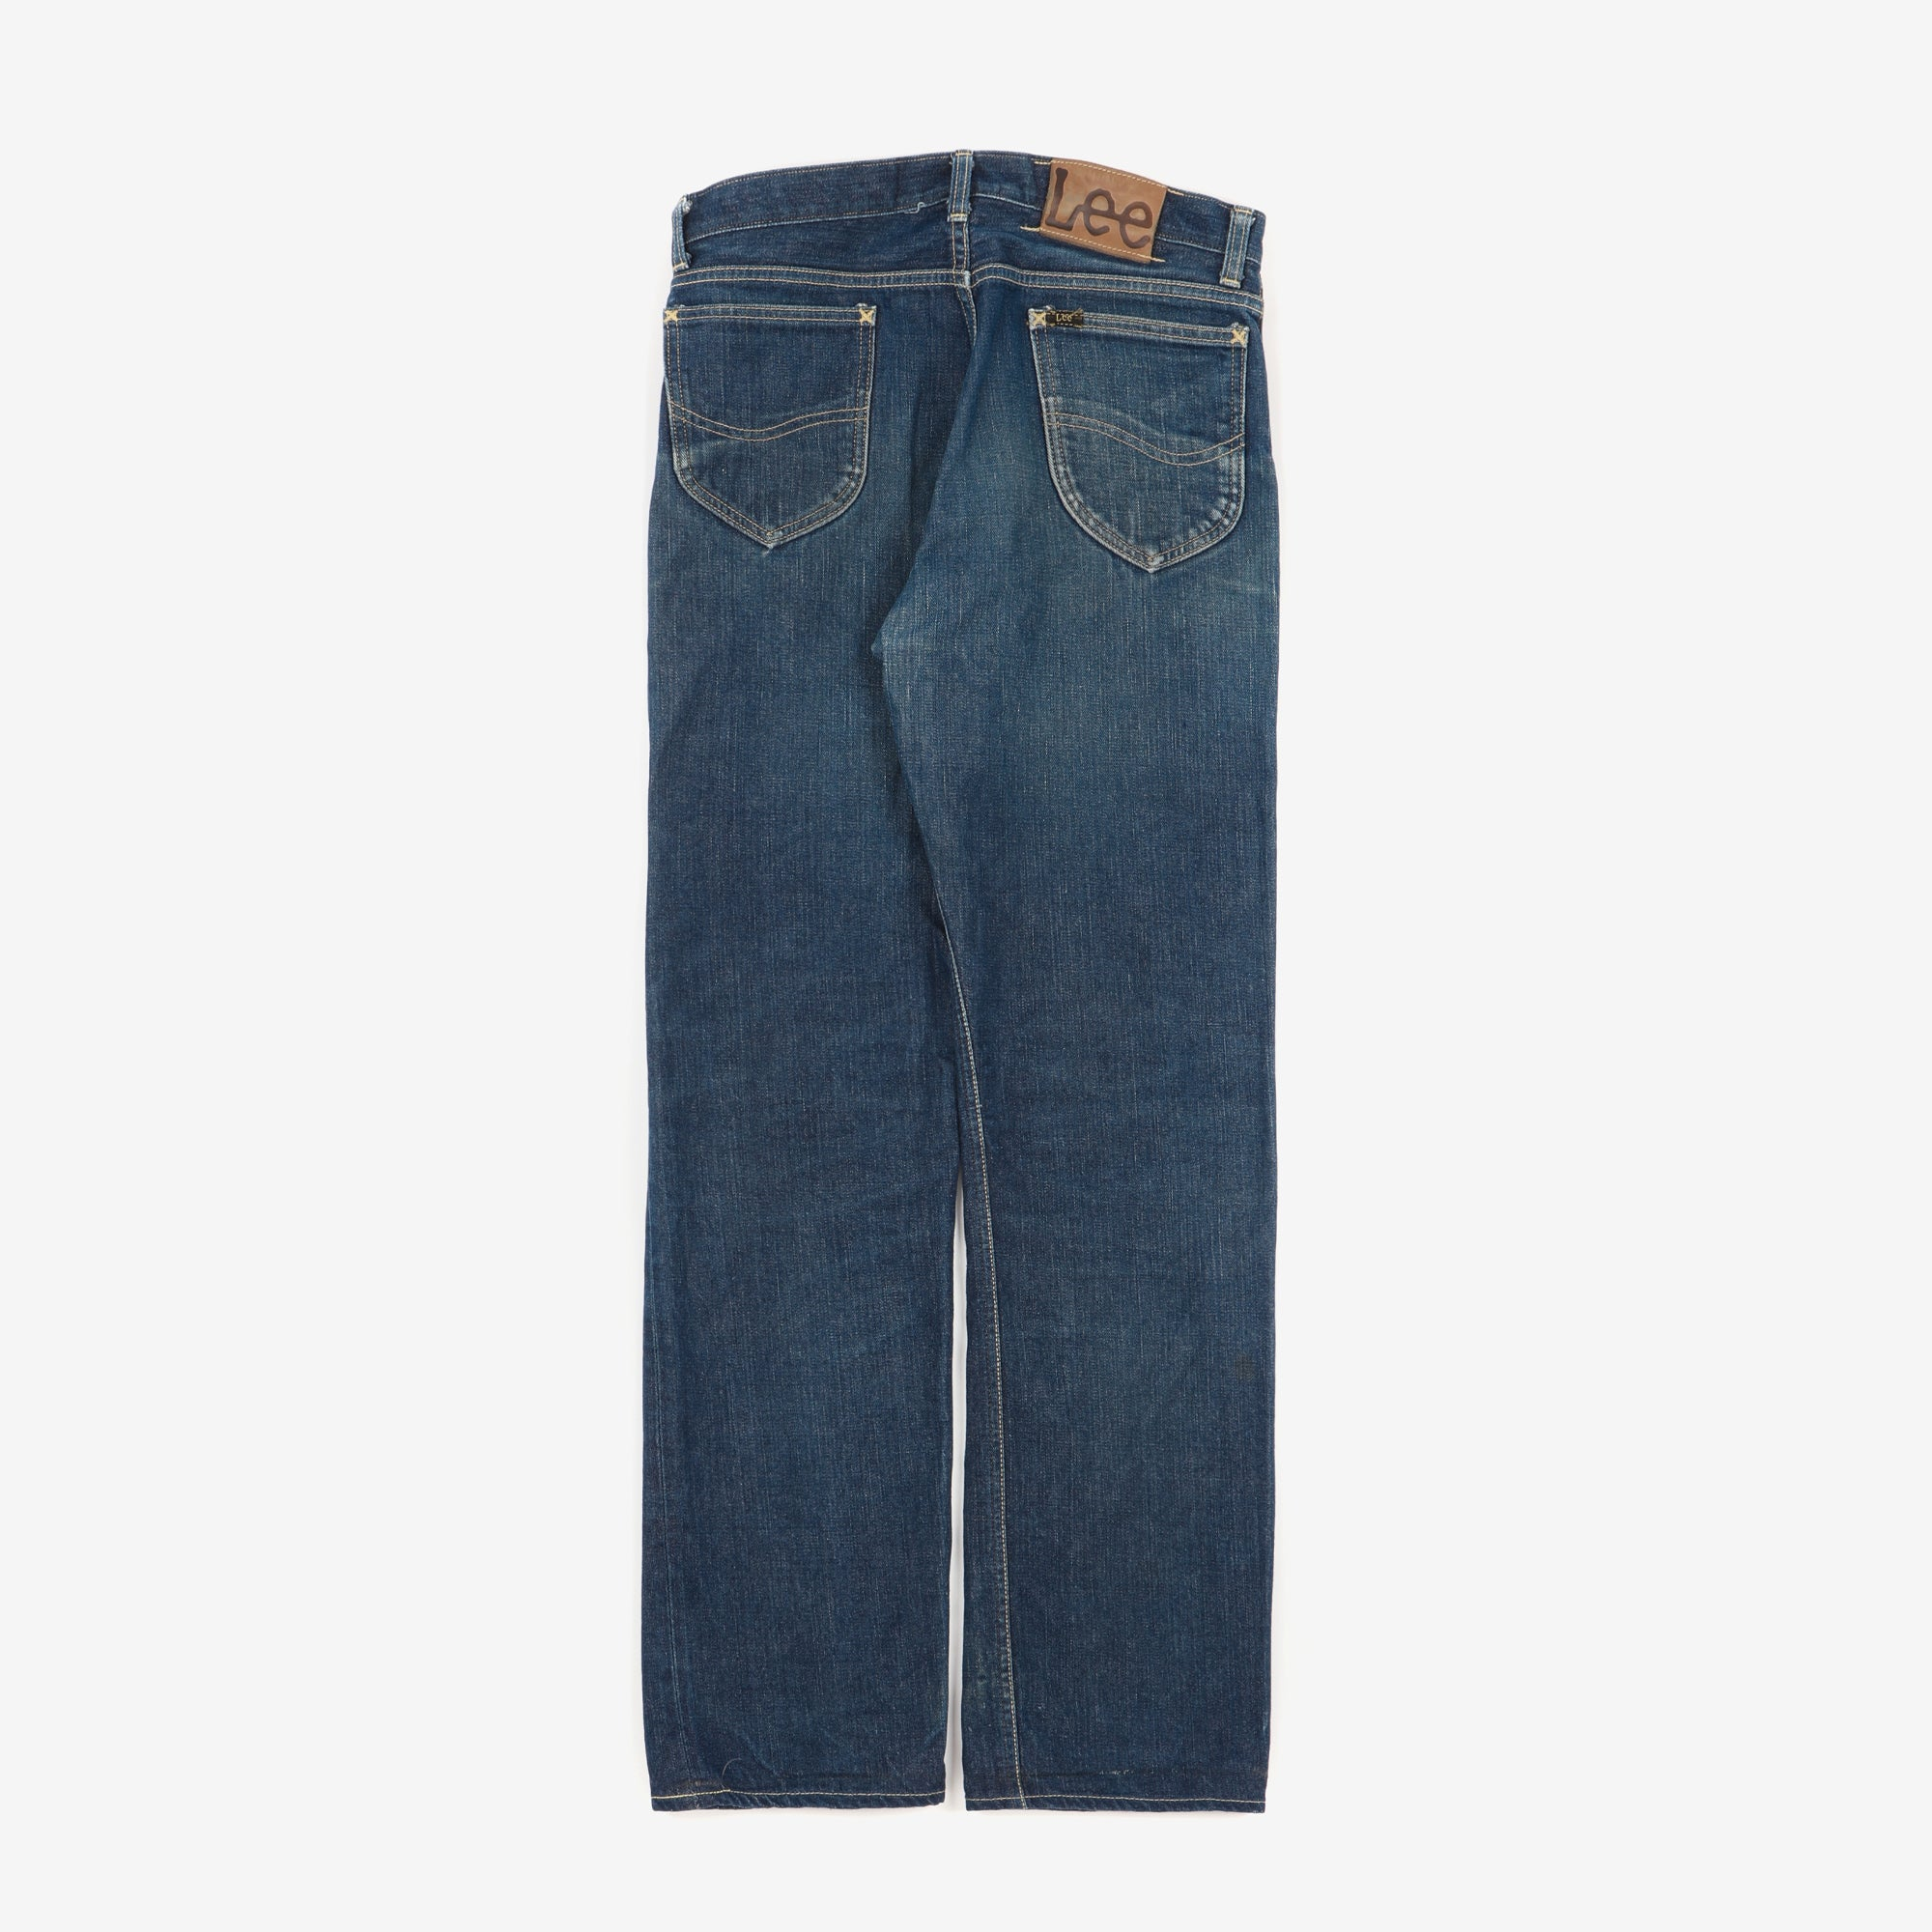 1955 101Z Selvedge Denim (Japan)